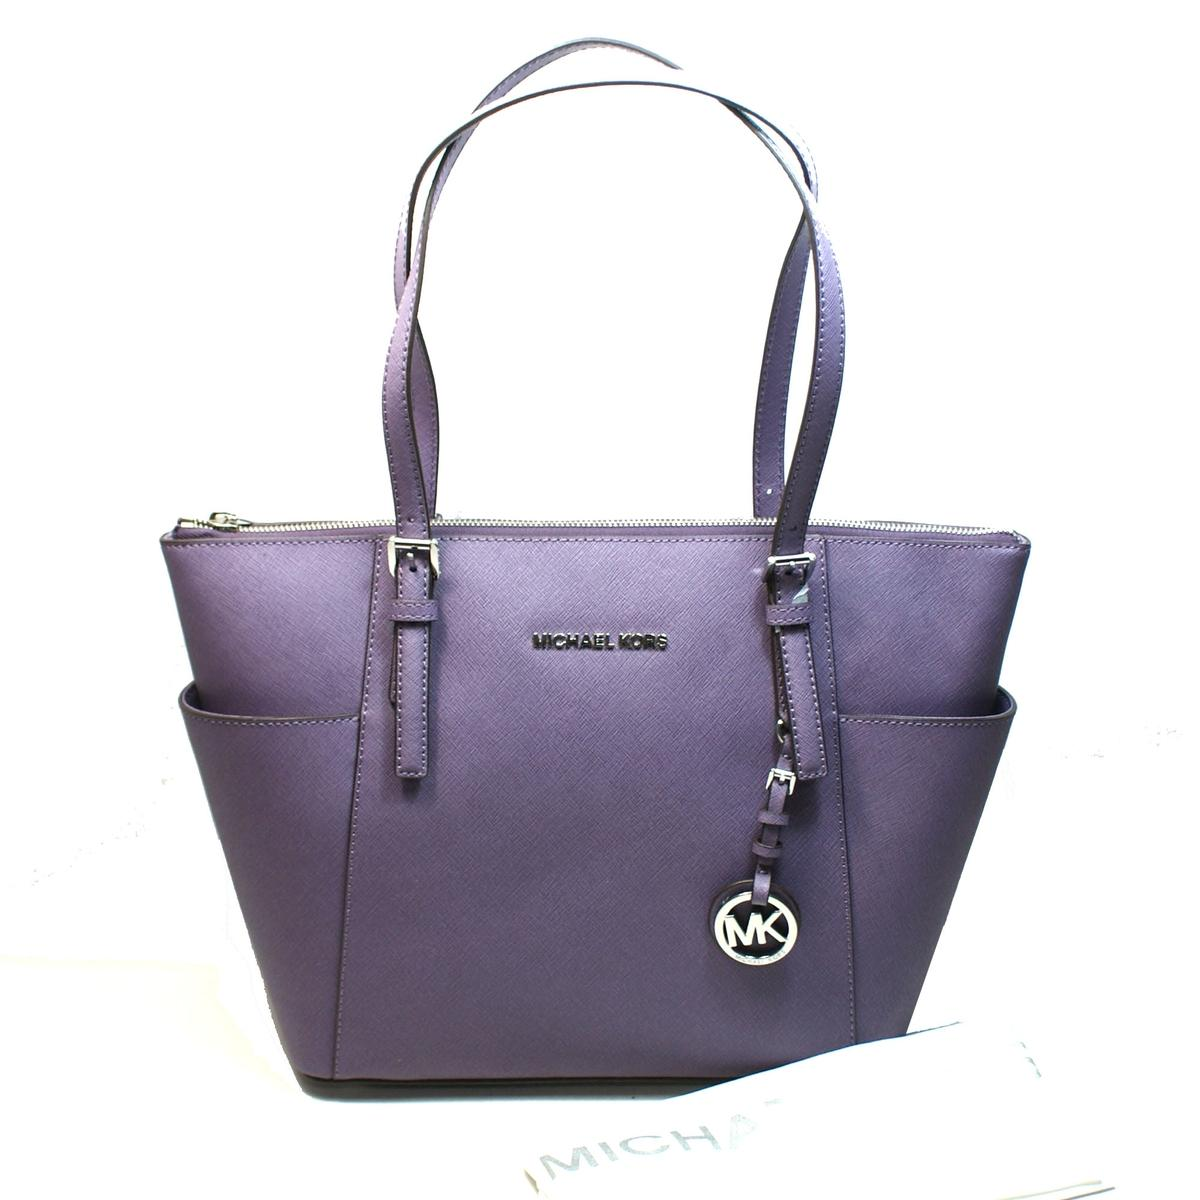 54064c5301a6 Home · Michael Kors · Jet Set East West Leather Top Zip Tote Wisteria.  CLICK THUMBNAIL TO ZOOM. Found ...